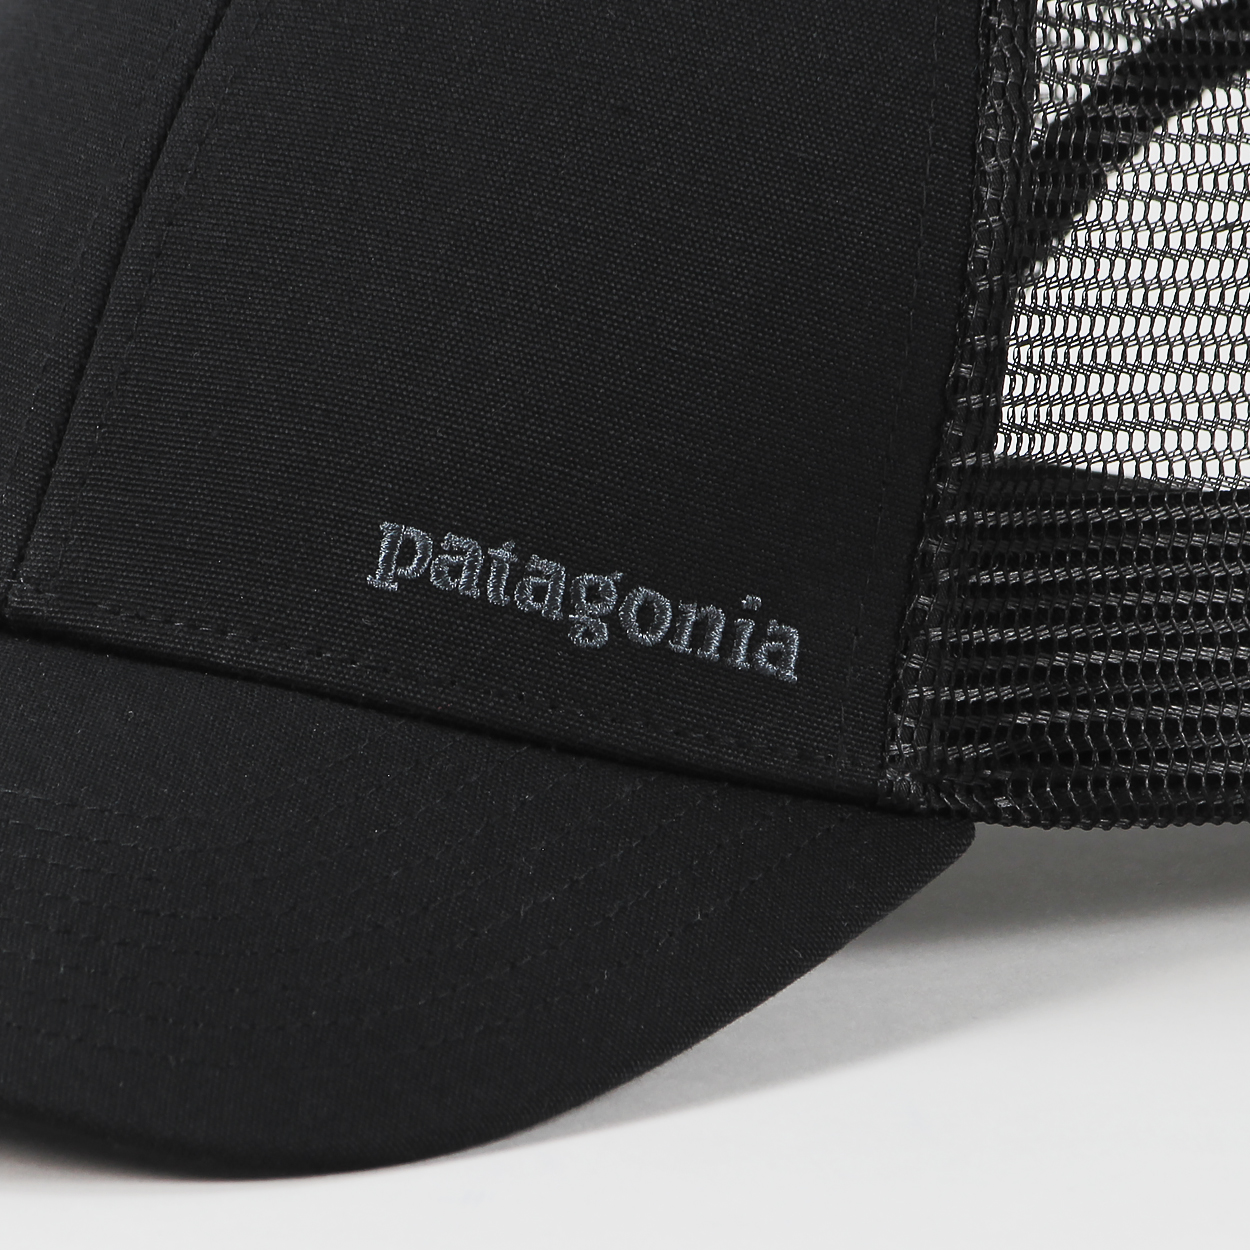 3c2ca616 This trucker from Patagonia has their low profile design which has a closer  fitting style. The front is made from organic cotton and the rear is a mesh  ...